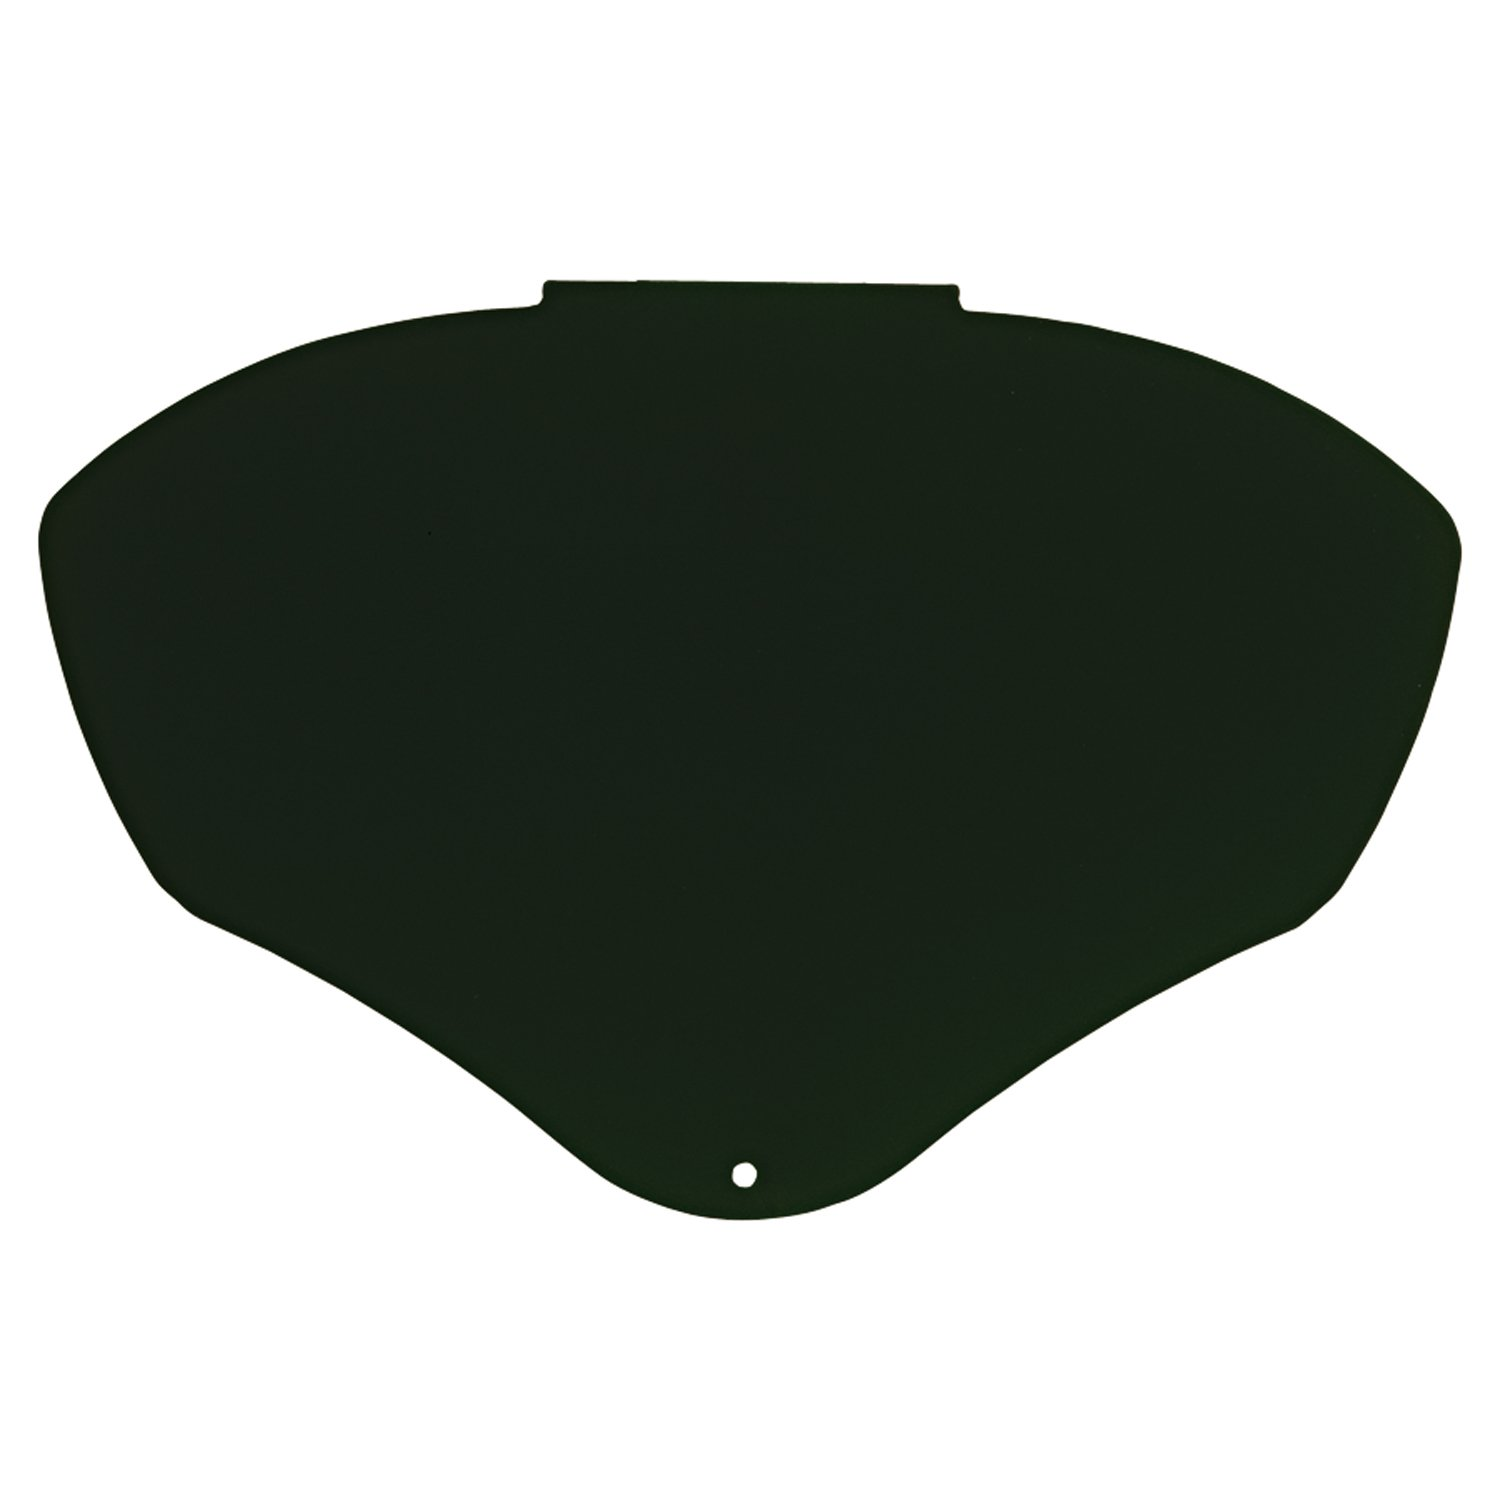 Uvex by Honeywell S8565 Bionic Face Full Shield Replacement Visors, Uncoated/Shade 5.0